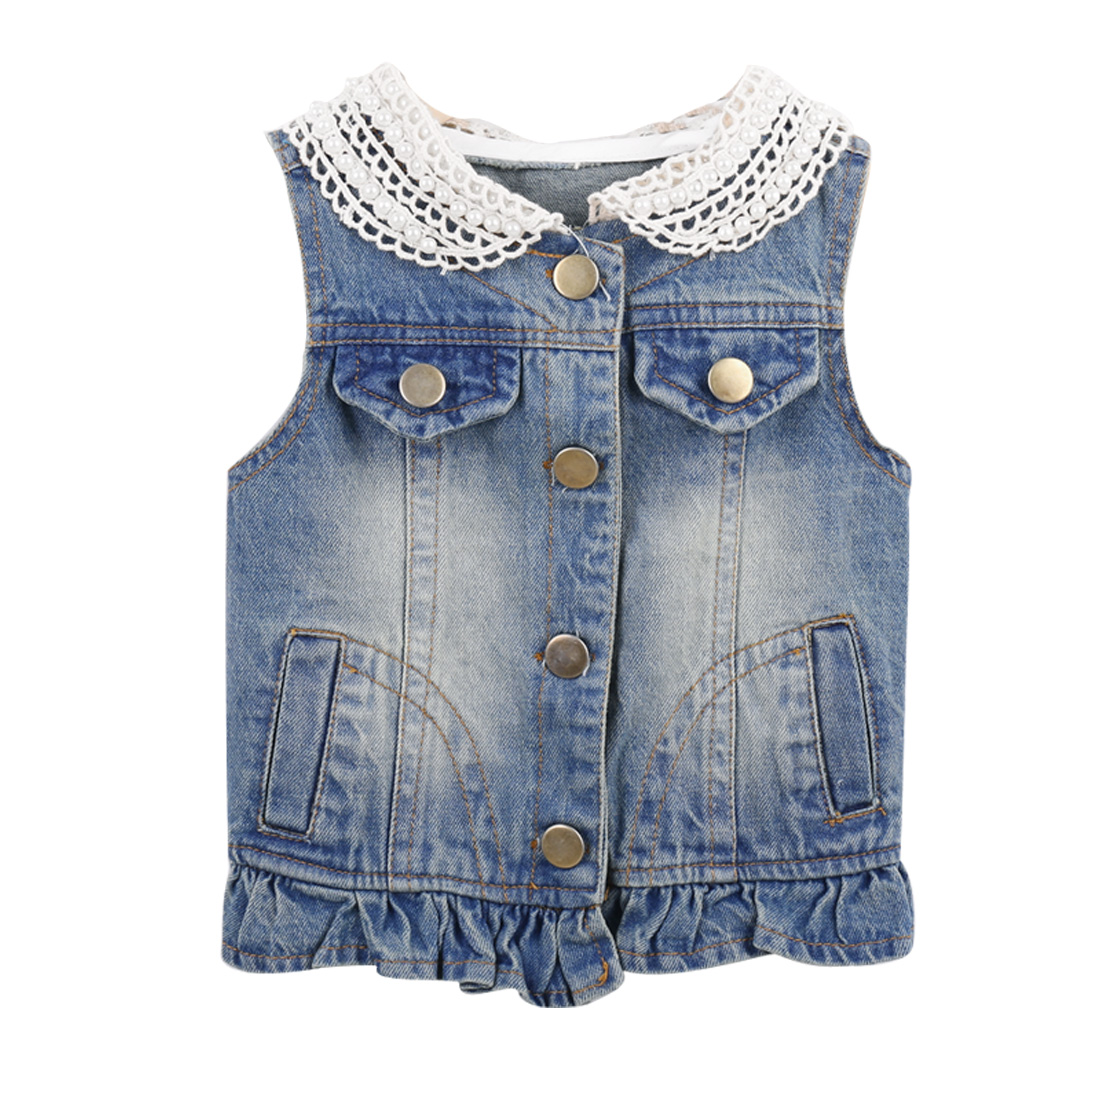 Girls Sweet Style Peter Pan Collar Side Pockets Buttoned Front 4T Blue Denim Vest